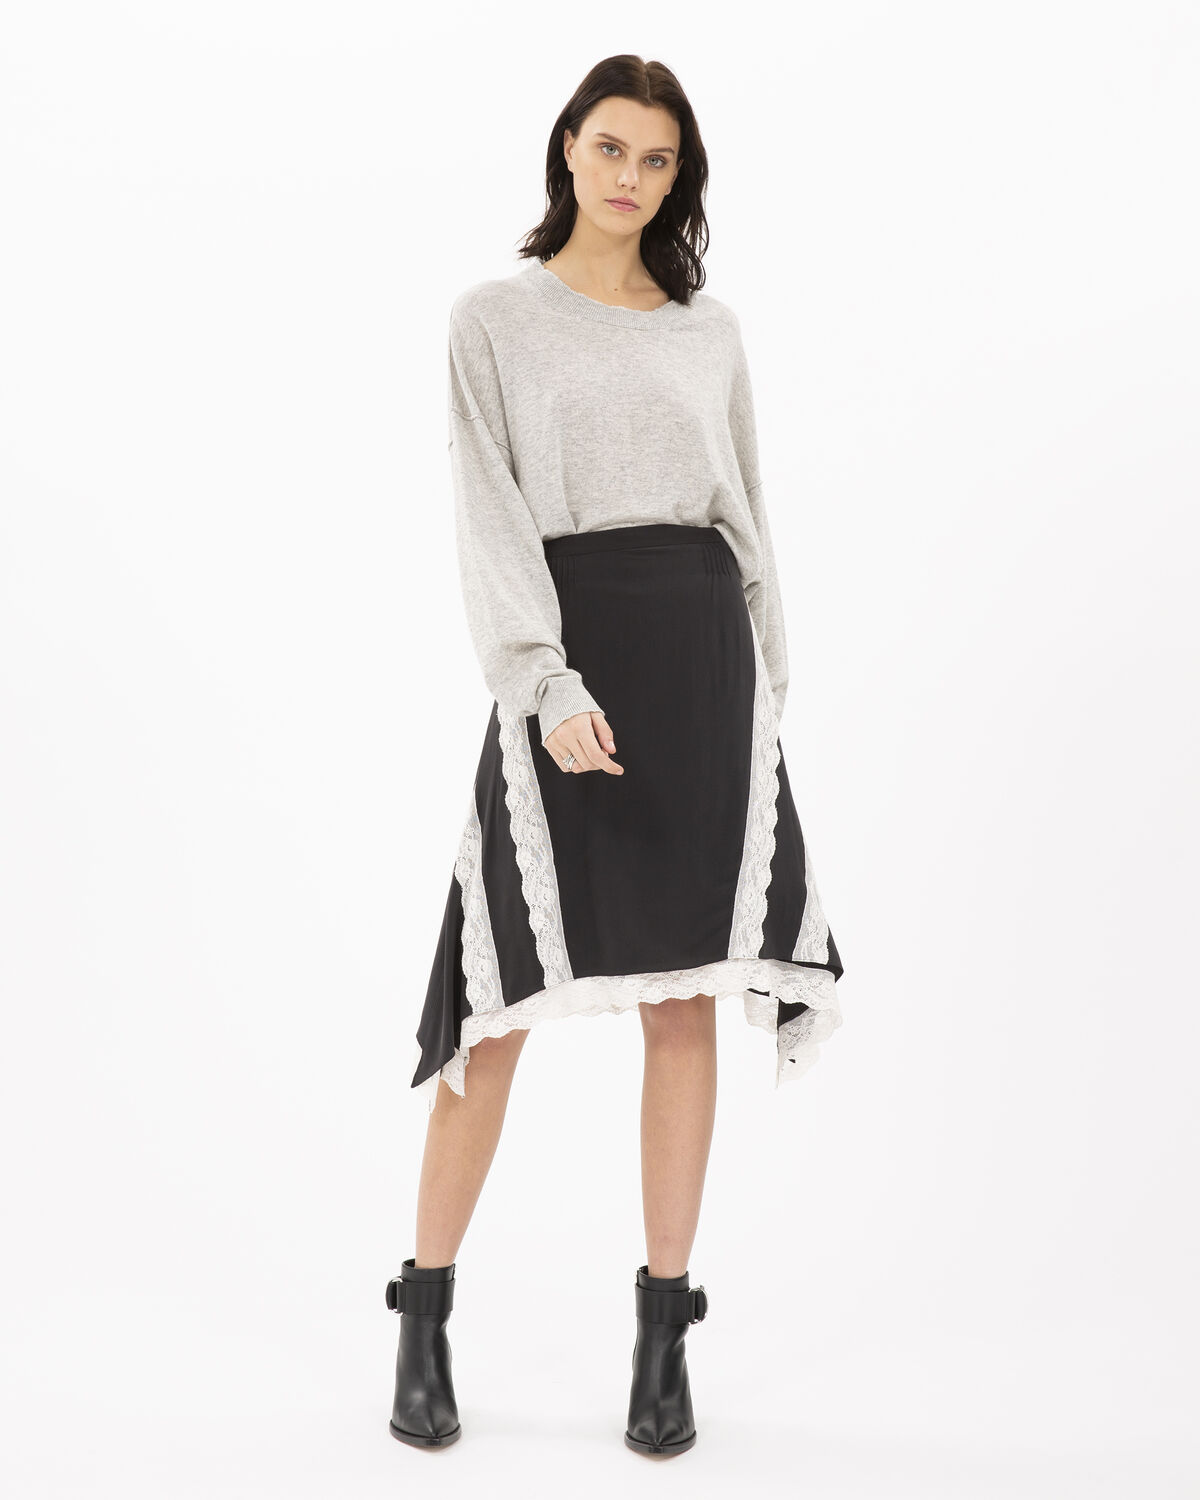 Present Skirt Black And Ecru by IRO Paris